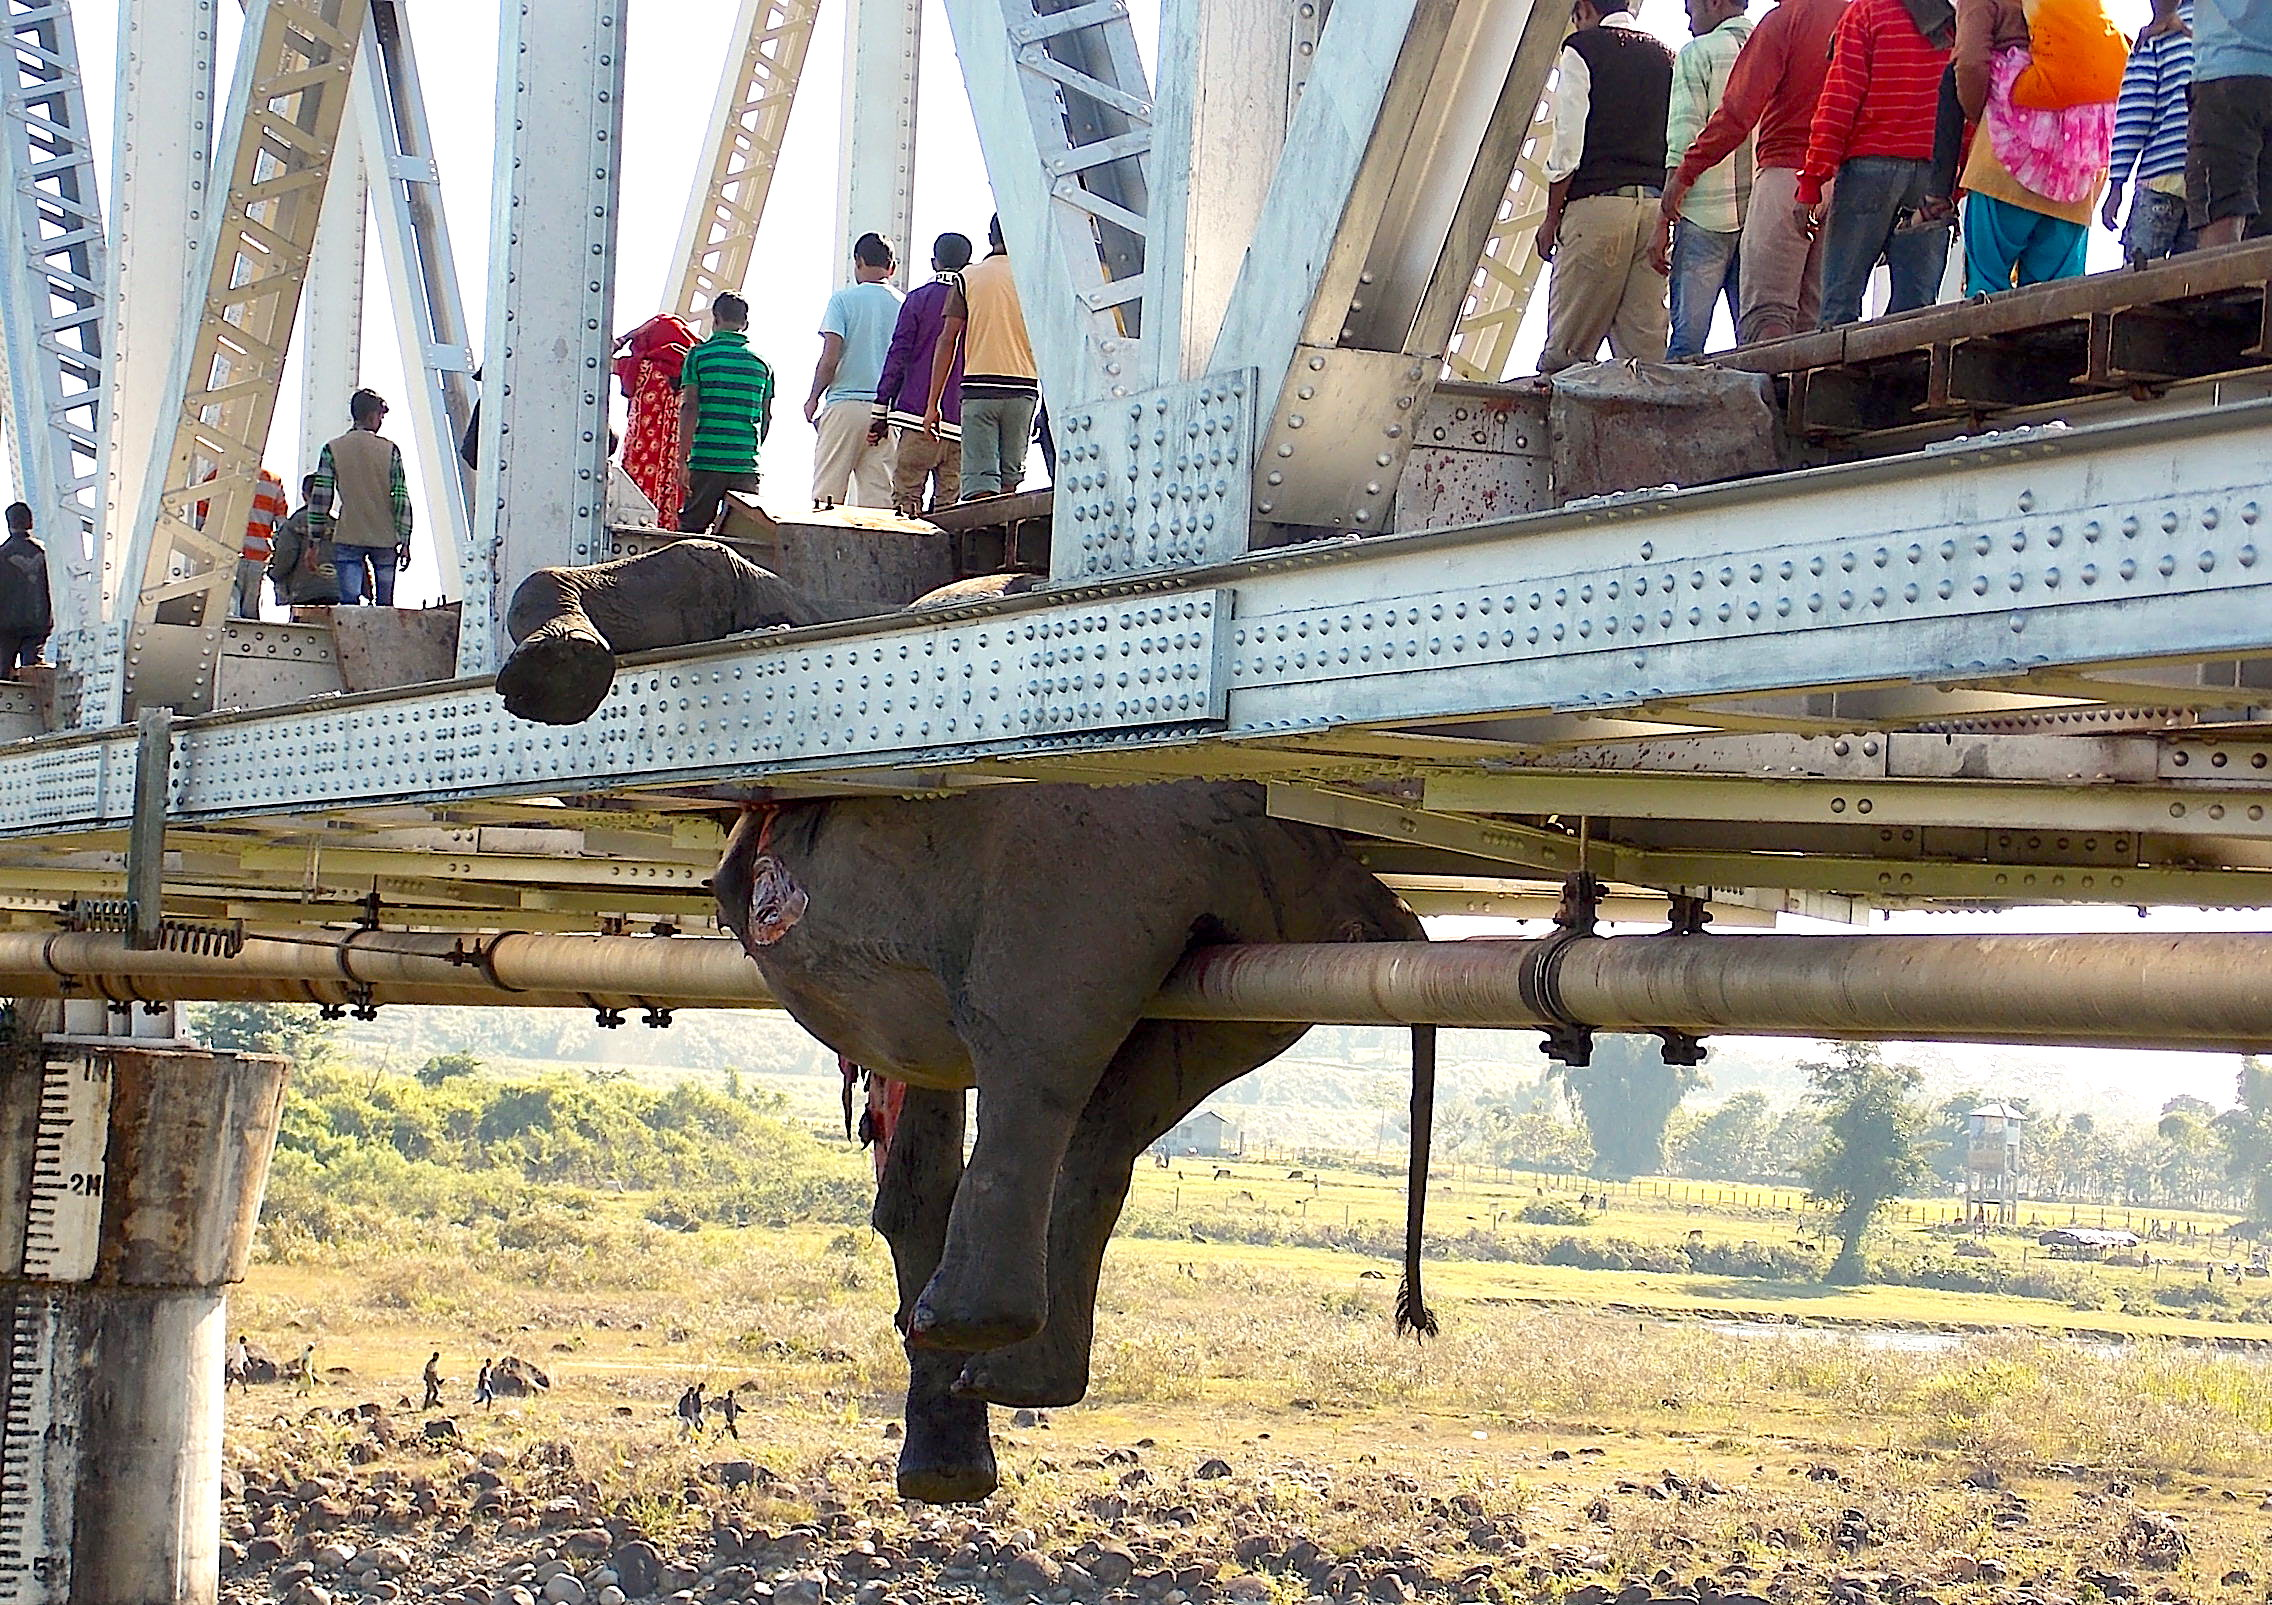 One of the six elephants killed by a speeding train on a railway track in Jalpaiguri, West Bengal, in November 2013. More than 1,200 trains cut through Protected Areas in India, taking a huge toll on wildlife.  Photo: Roni Chowdhury